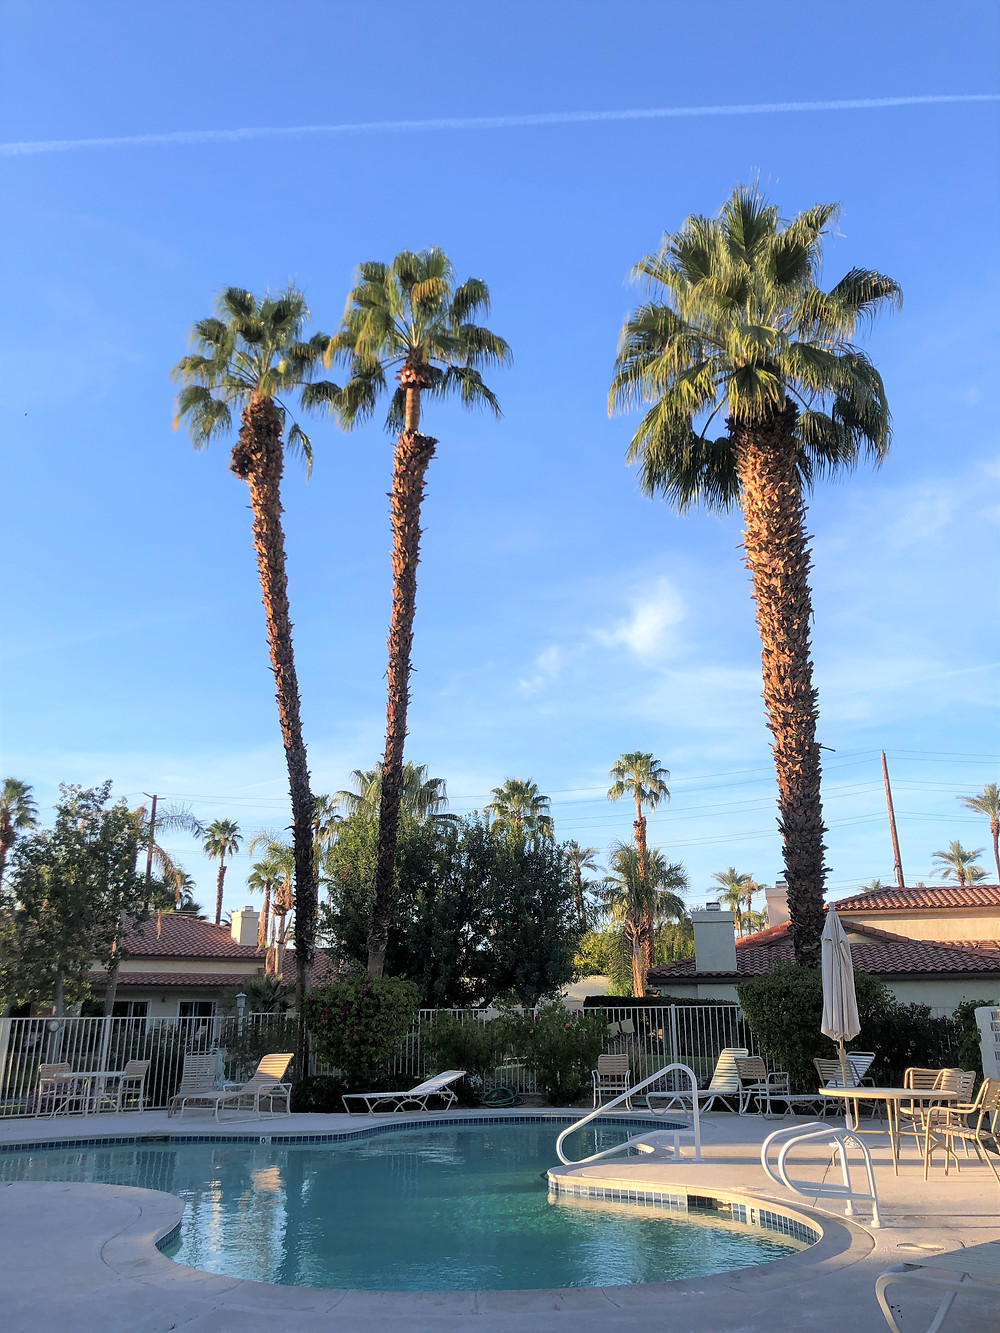 Palm tree and swimming pool in Palm Desert